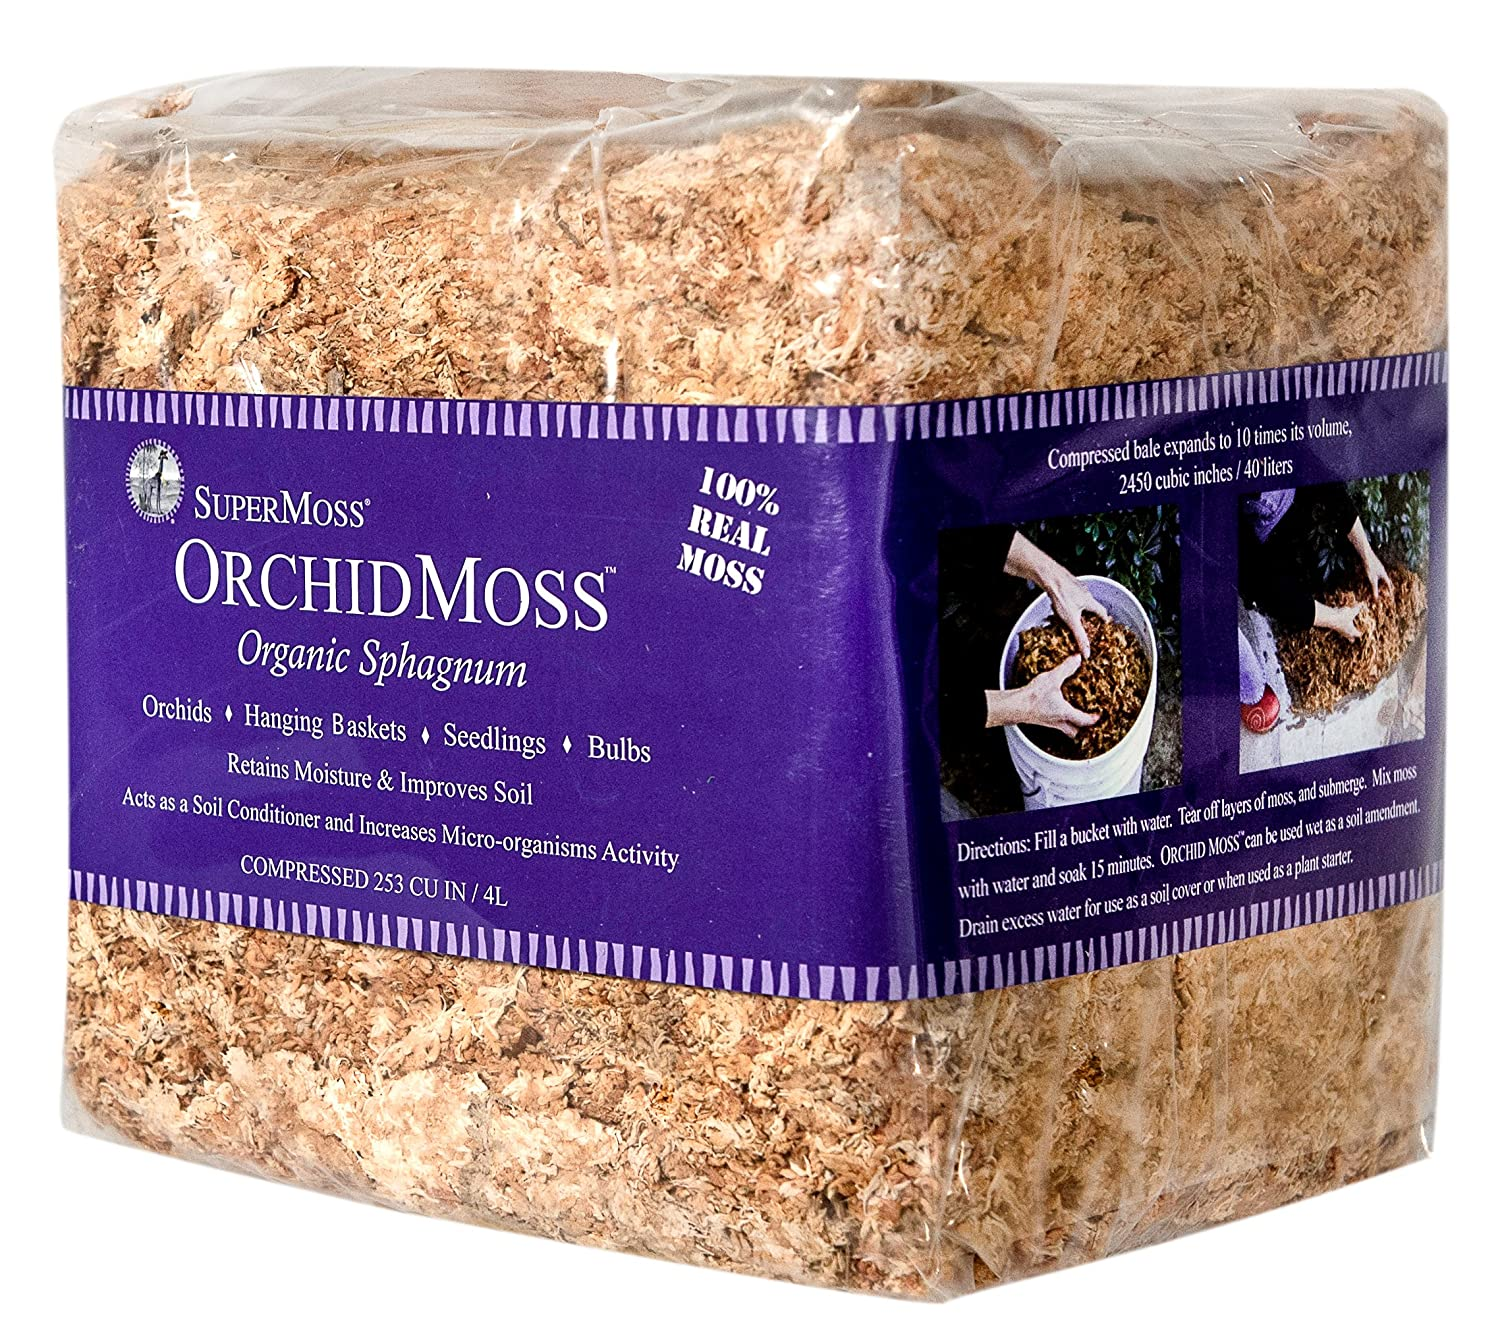 SuperMoss (22325) Orchid Sphagnum Moss Dried, Natural, 1lb Mini Bale 7 59834 22325 2